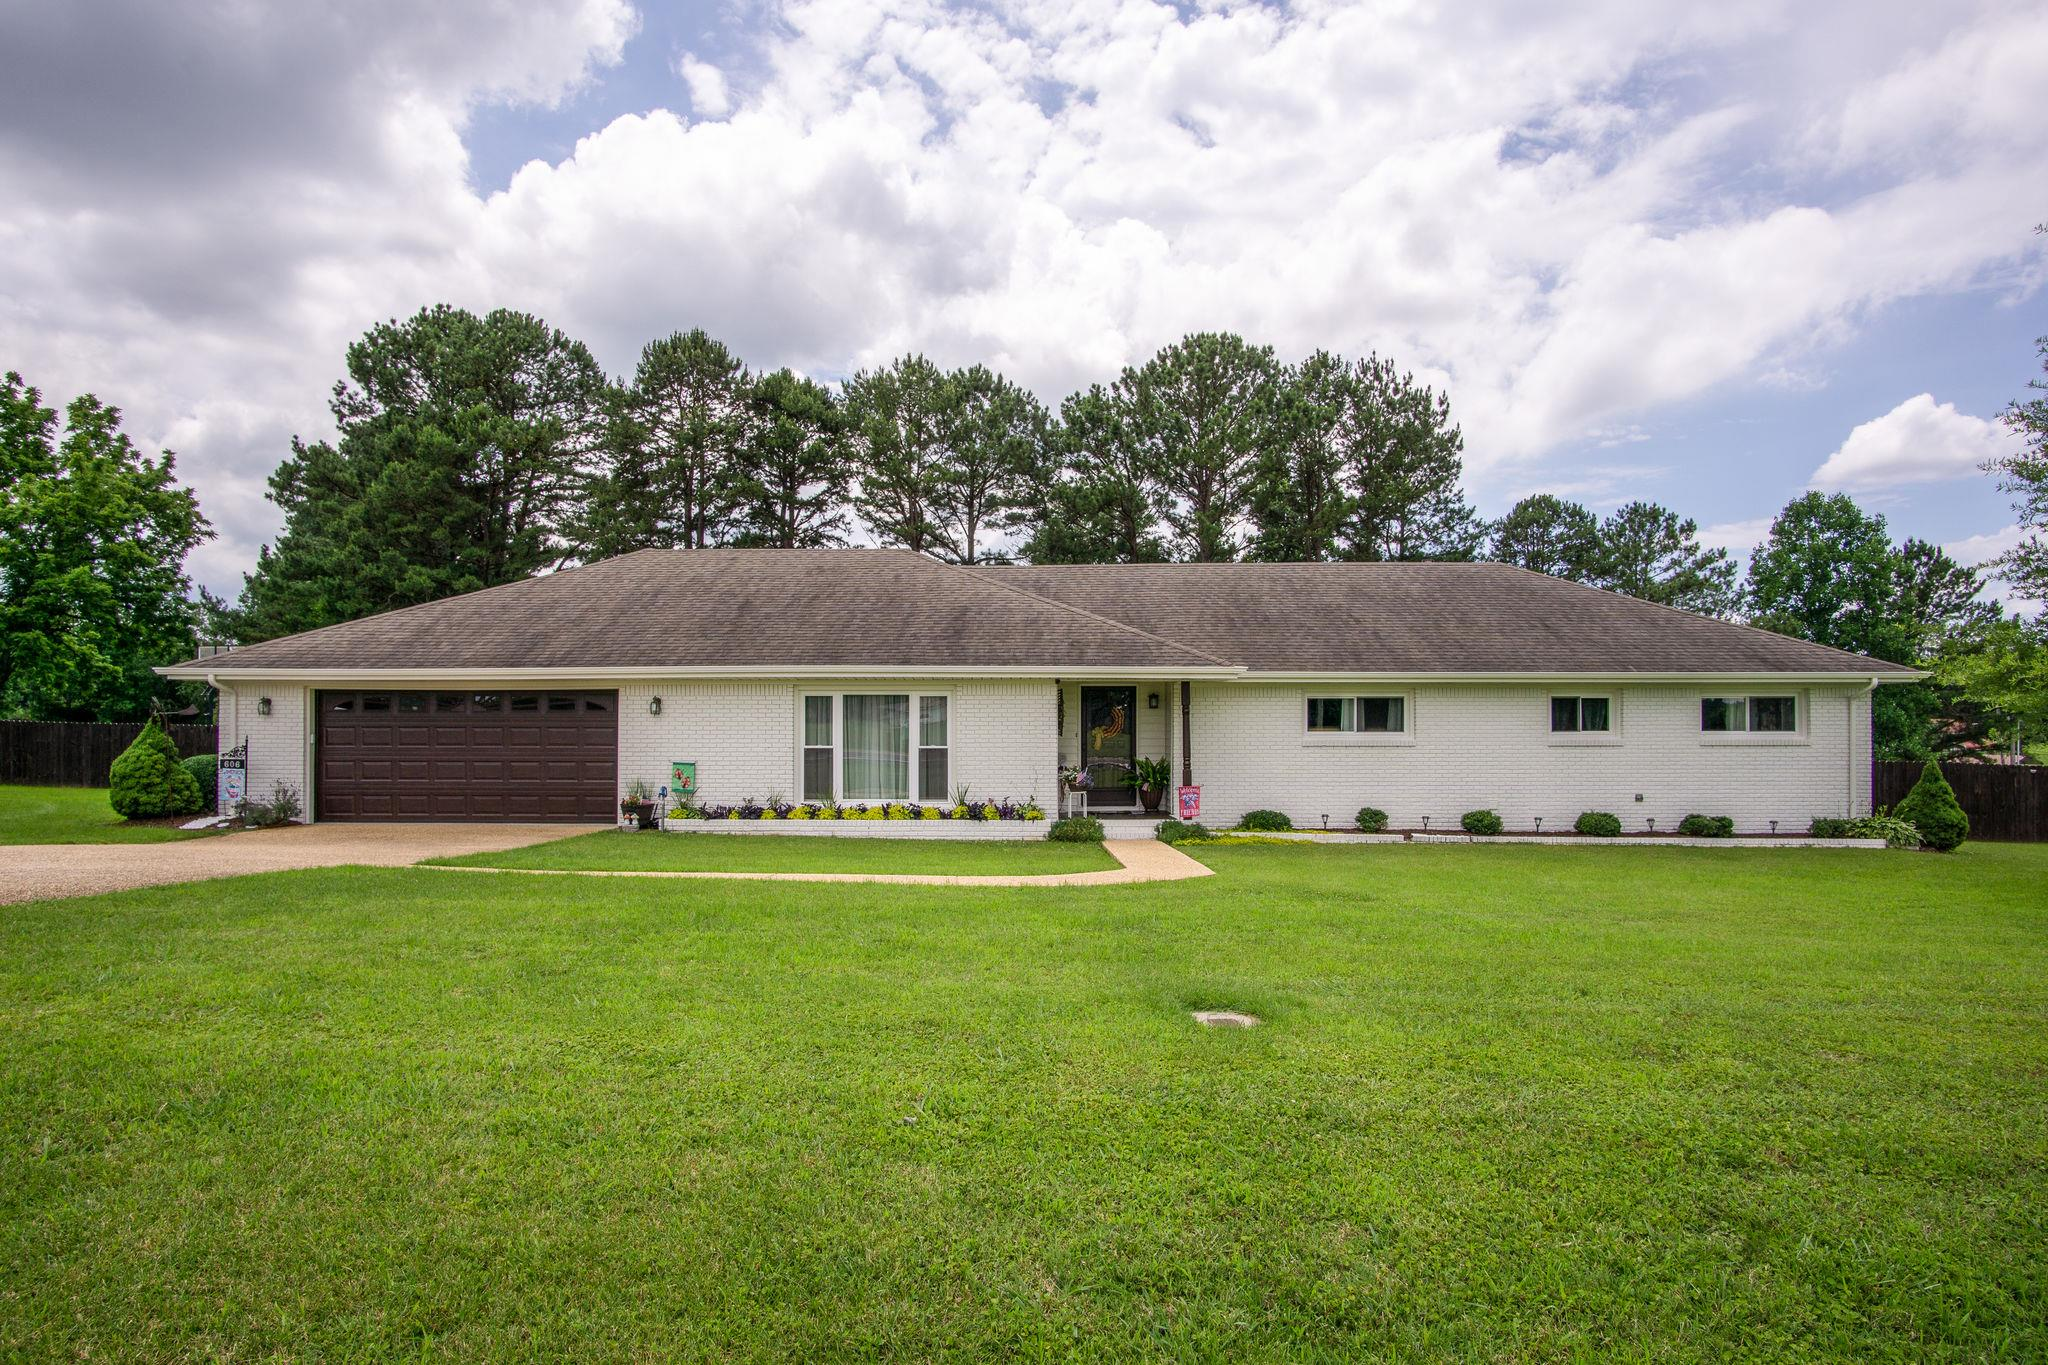 606 E Main St, Loretto, TN 38469 - Loretto, TN real estate listing